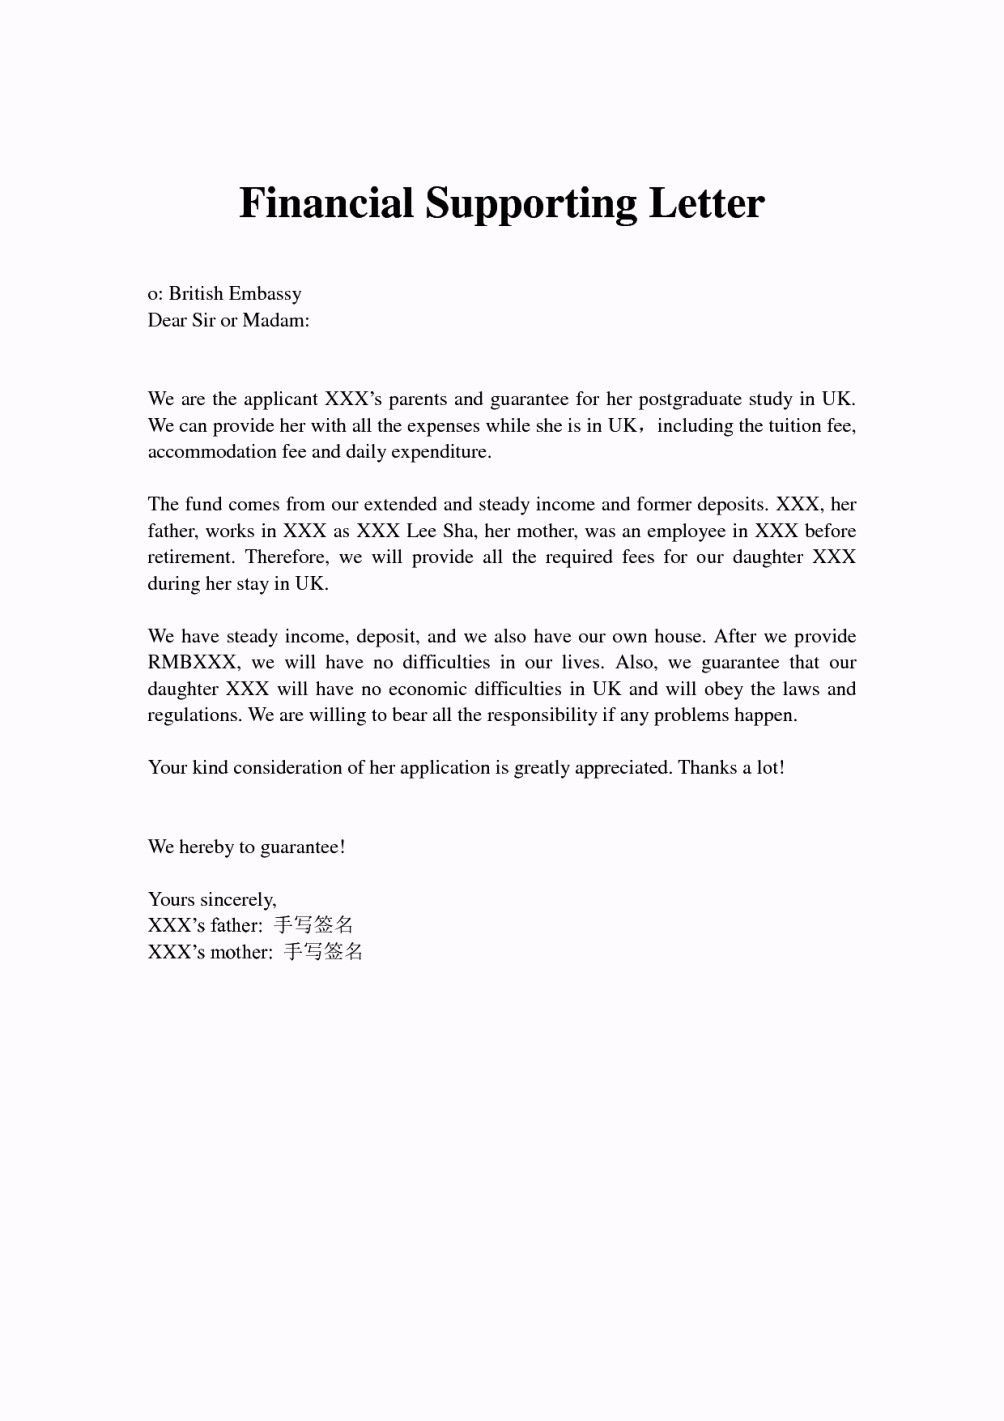 Financial Support Letter From Parents Letter Support